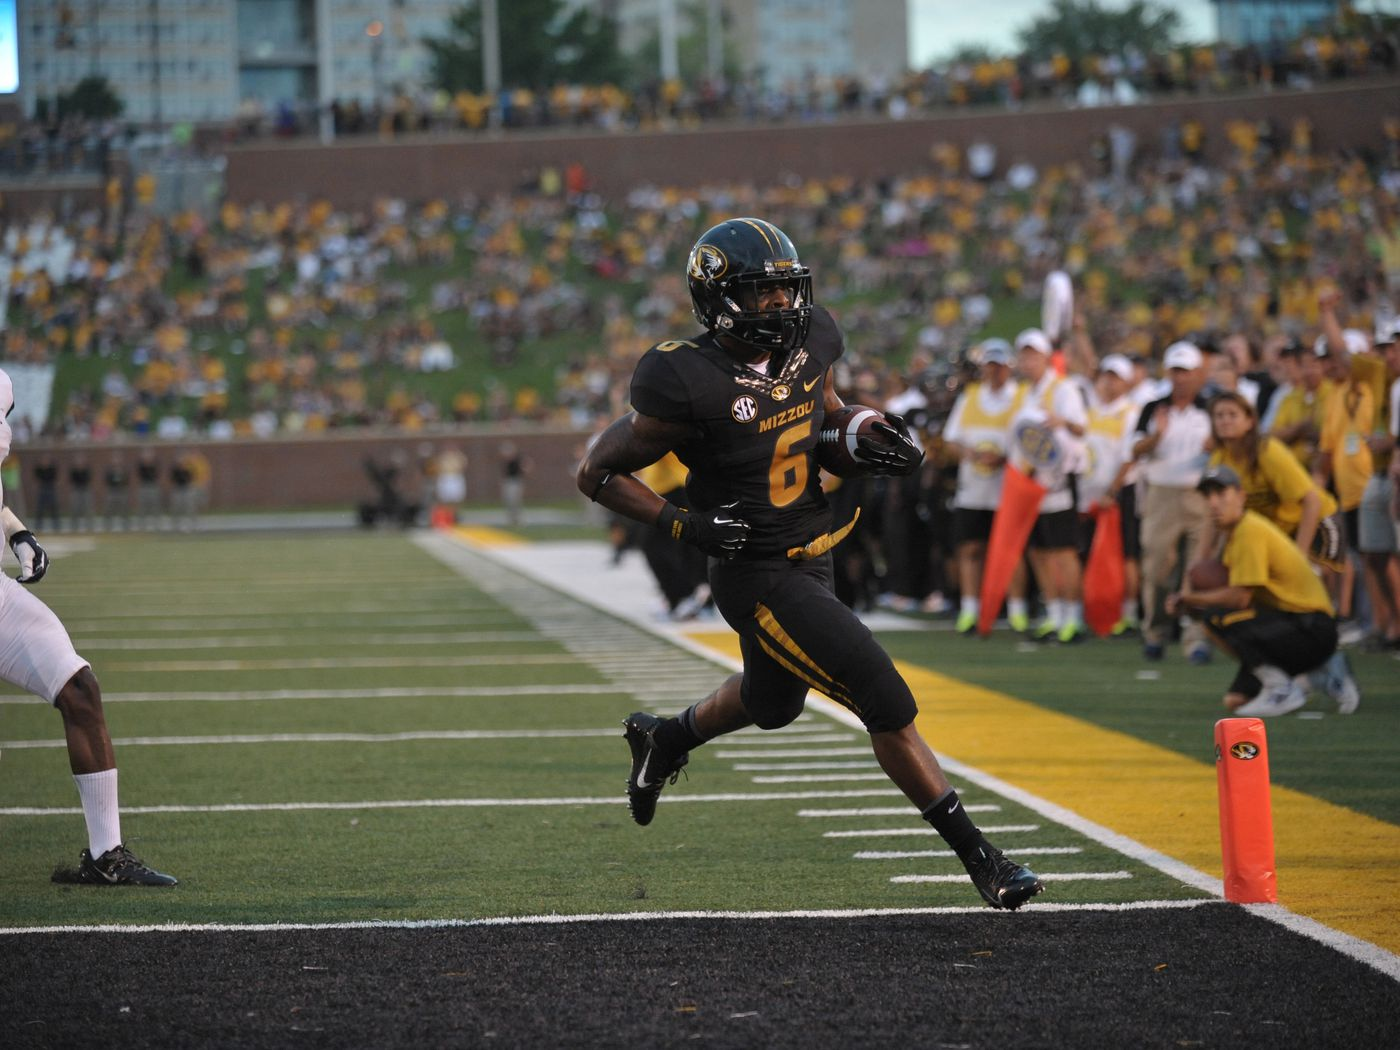 Tgif Links Uniforms Jaleel Clark And The Numbers Game